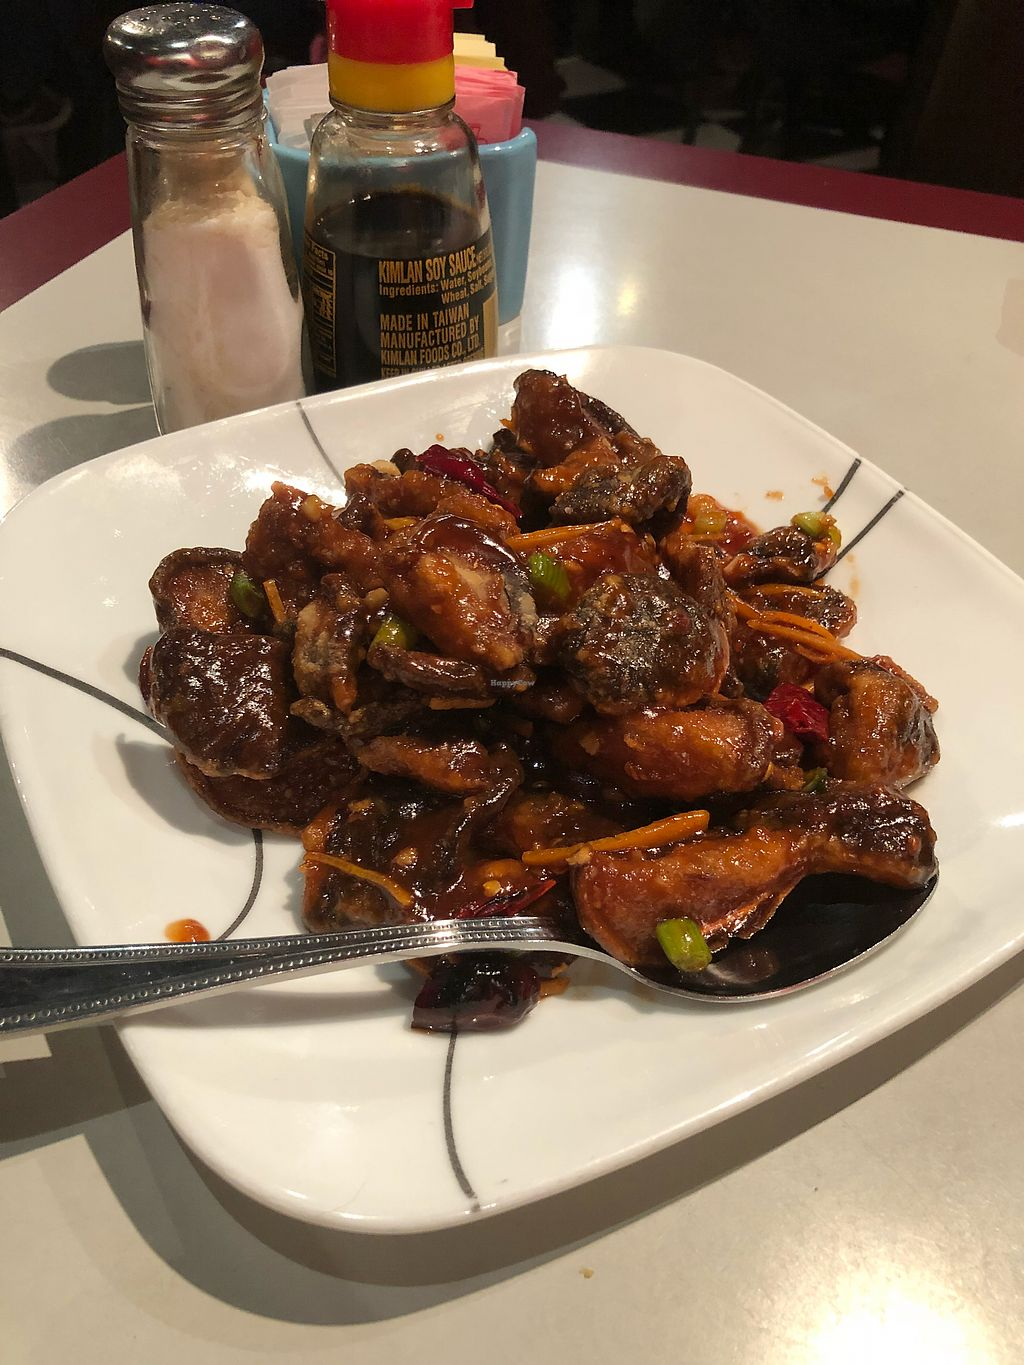 """Photo of Yu Garden Asian Cuisine  by <a href=""""/members/profile/Genki"""">Genki</a> <br/>Vegan orange chicken <br/> February 17, 2018  - <a href='/contact/abuse/image/37452/360200'>Report</a>"""